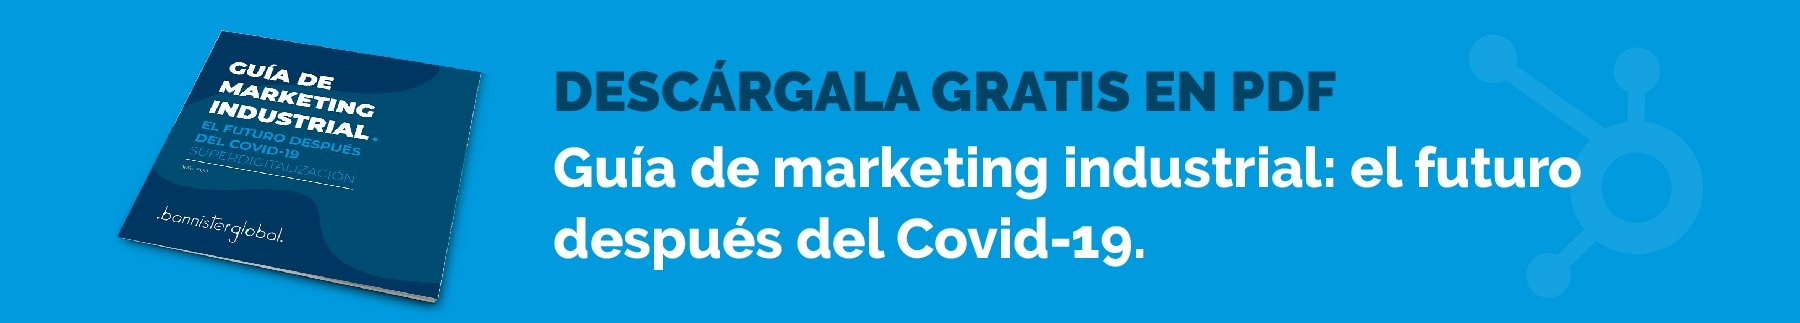 Guía de marketing industrial: el futuro después del Covid-19